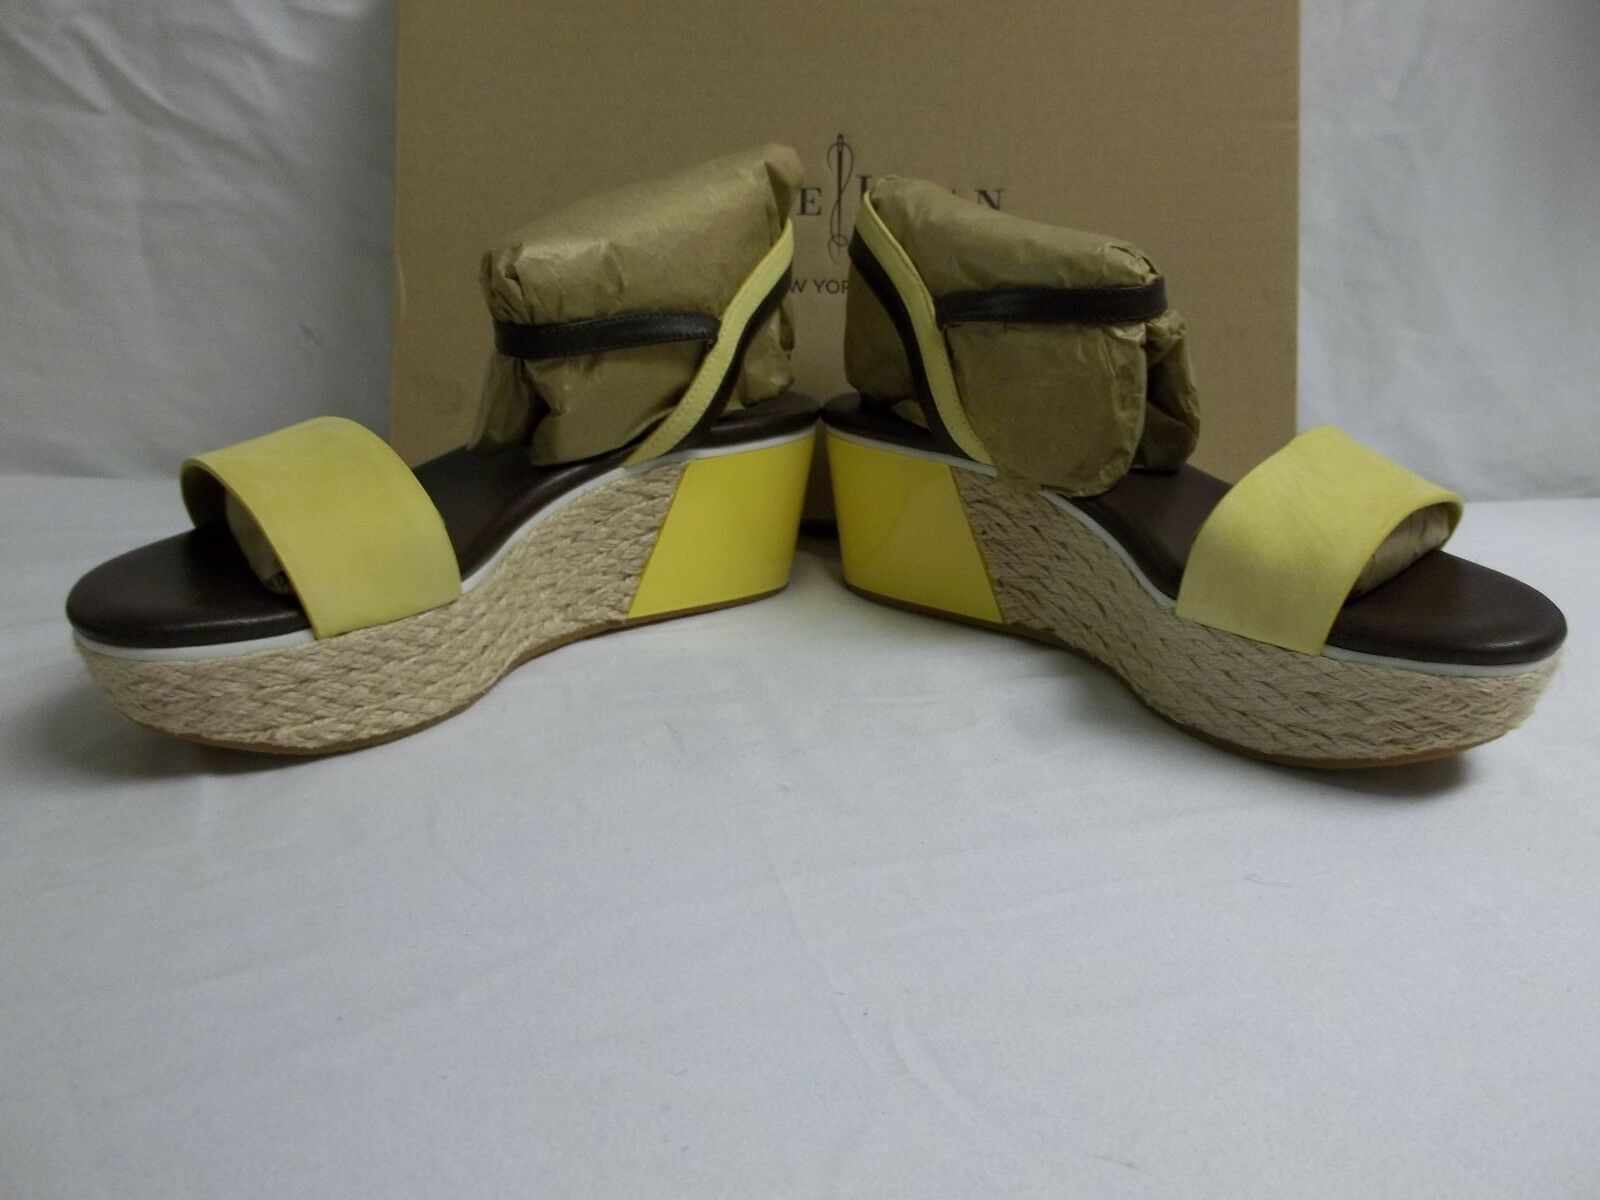 Cole Haan Dimensione 8.5 M Arden Leather Sunlight Wedges Wedges Wedges Sandals New donna scarpe 061fb8